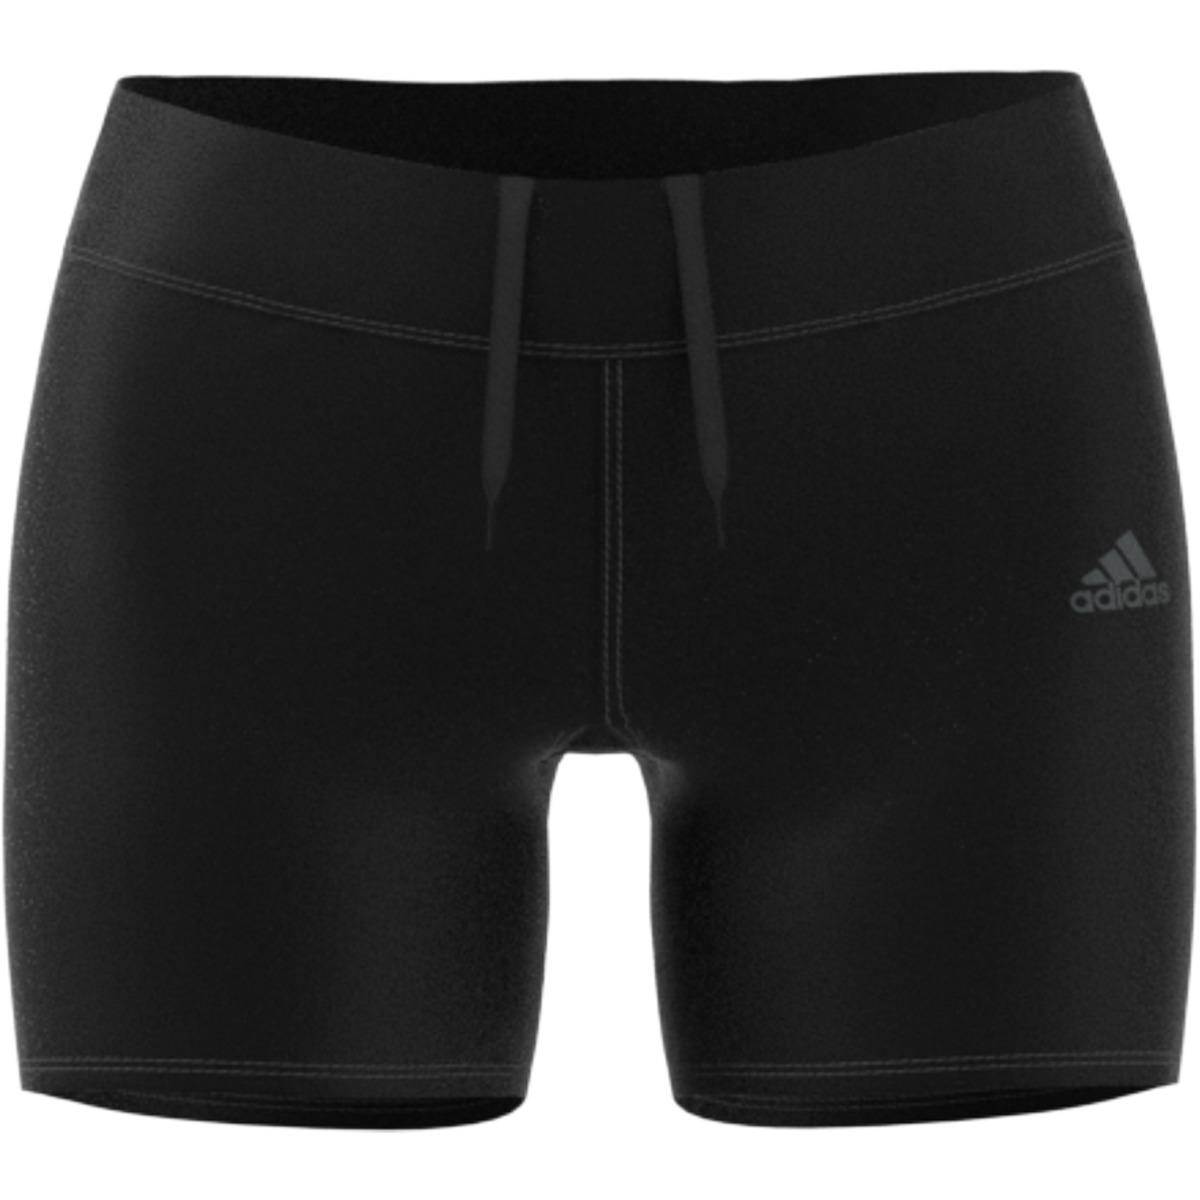 c3693a8a6ca Adidas - Black Response Short leggings - Lyst. View fullscreen